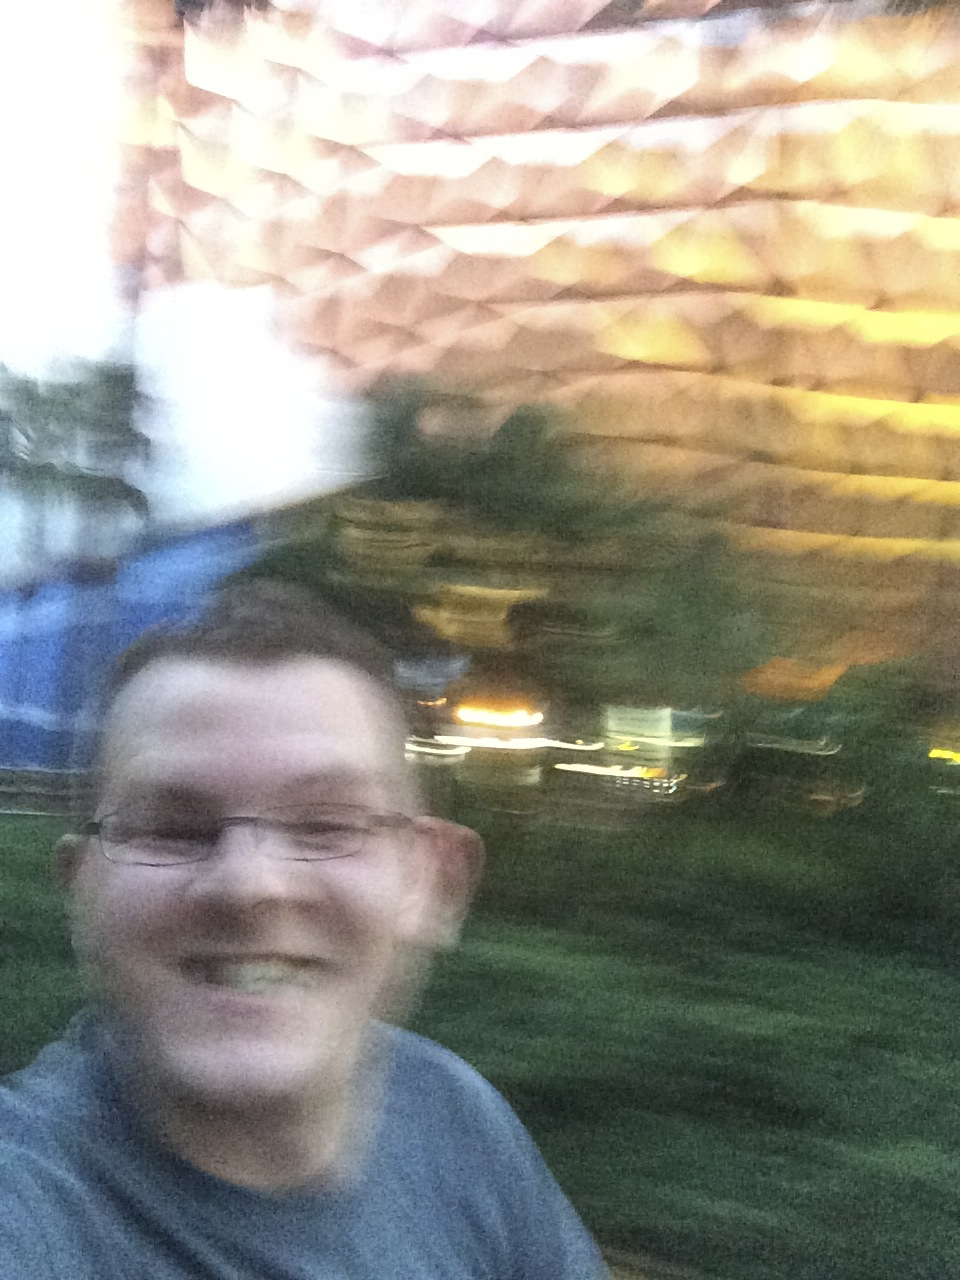 My second win hit right as I crossed back into Epcot. No time for a proper photo; the finish line is so close!